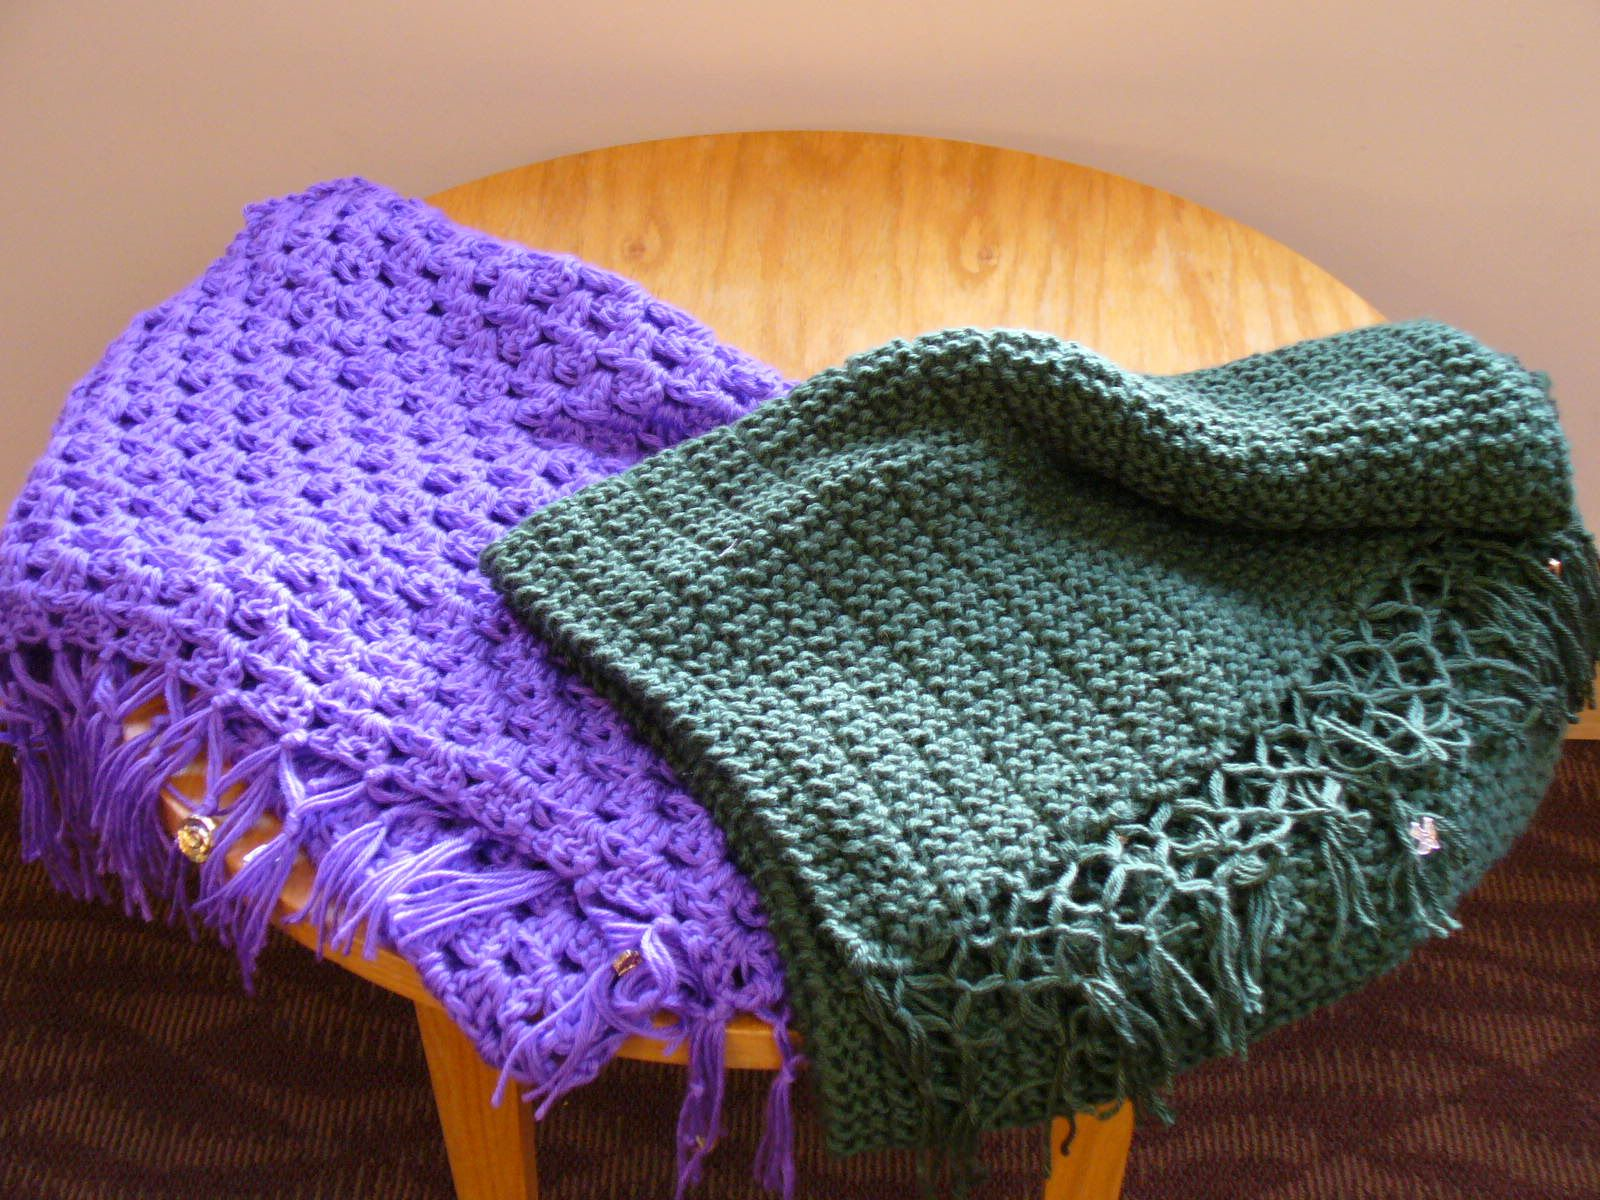 Prayer Shawl Patterns with history, meaning and helpful